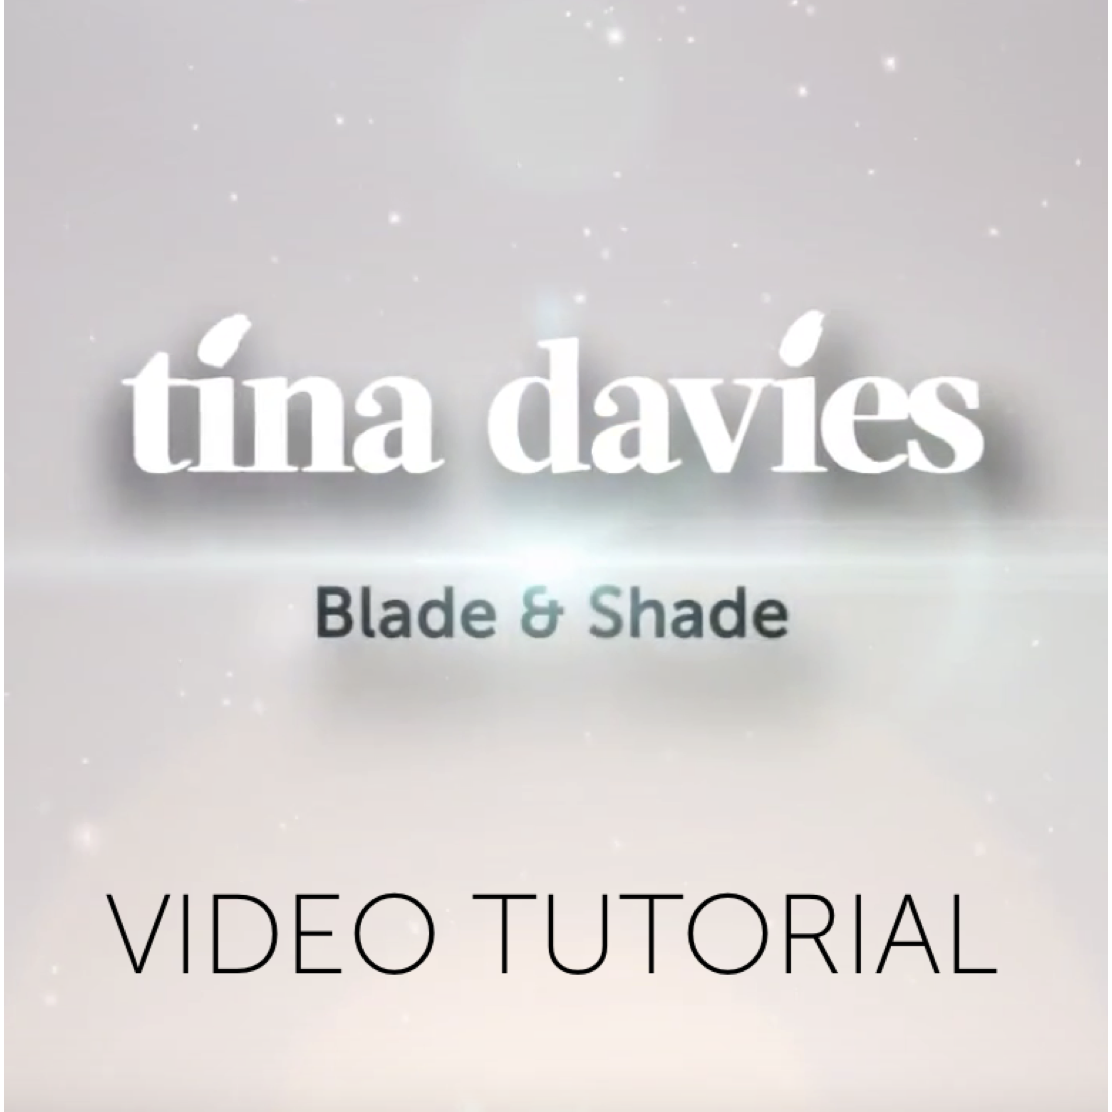 Blade & Shade Video Tutorial - Tina Davies